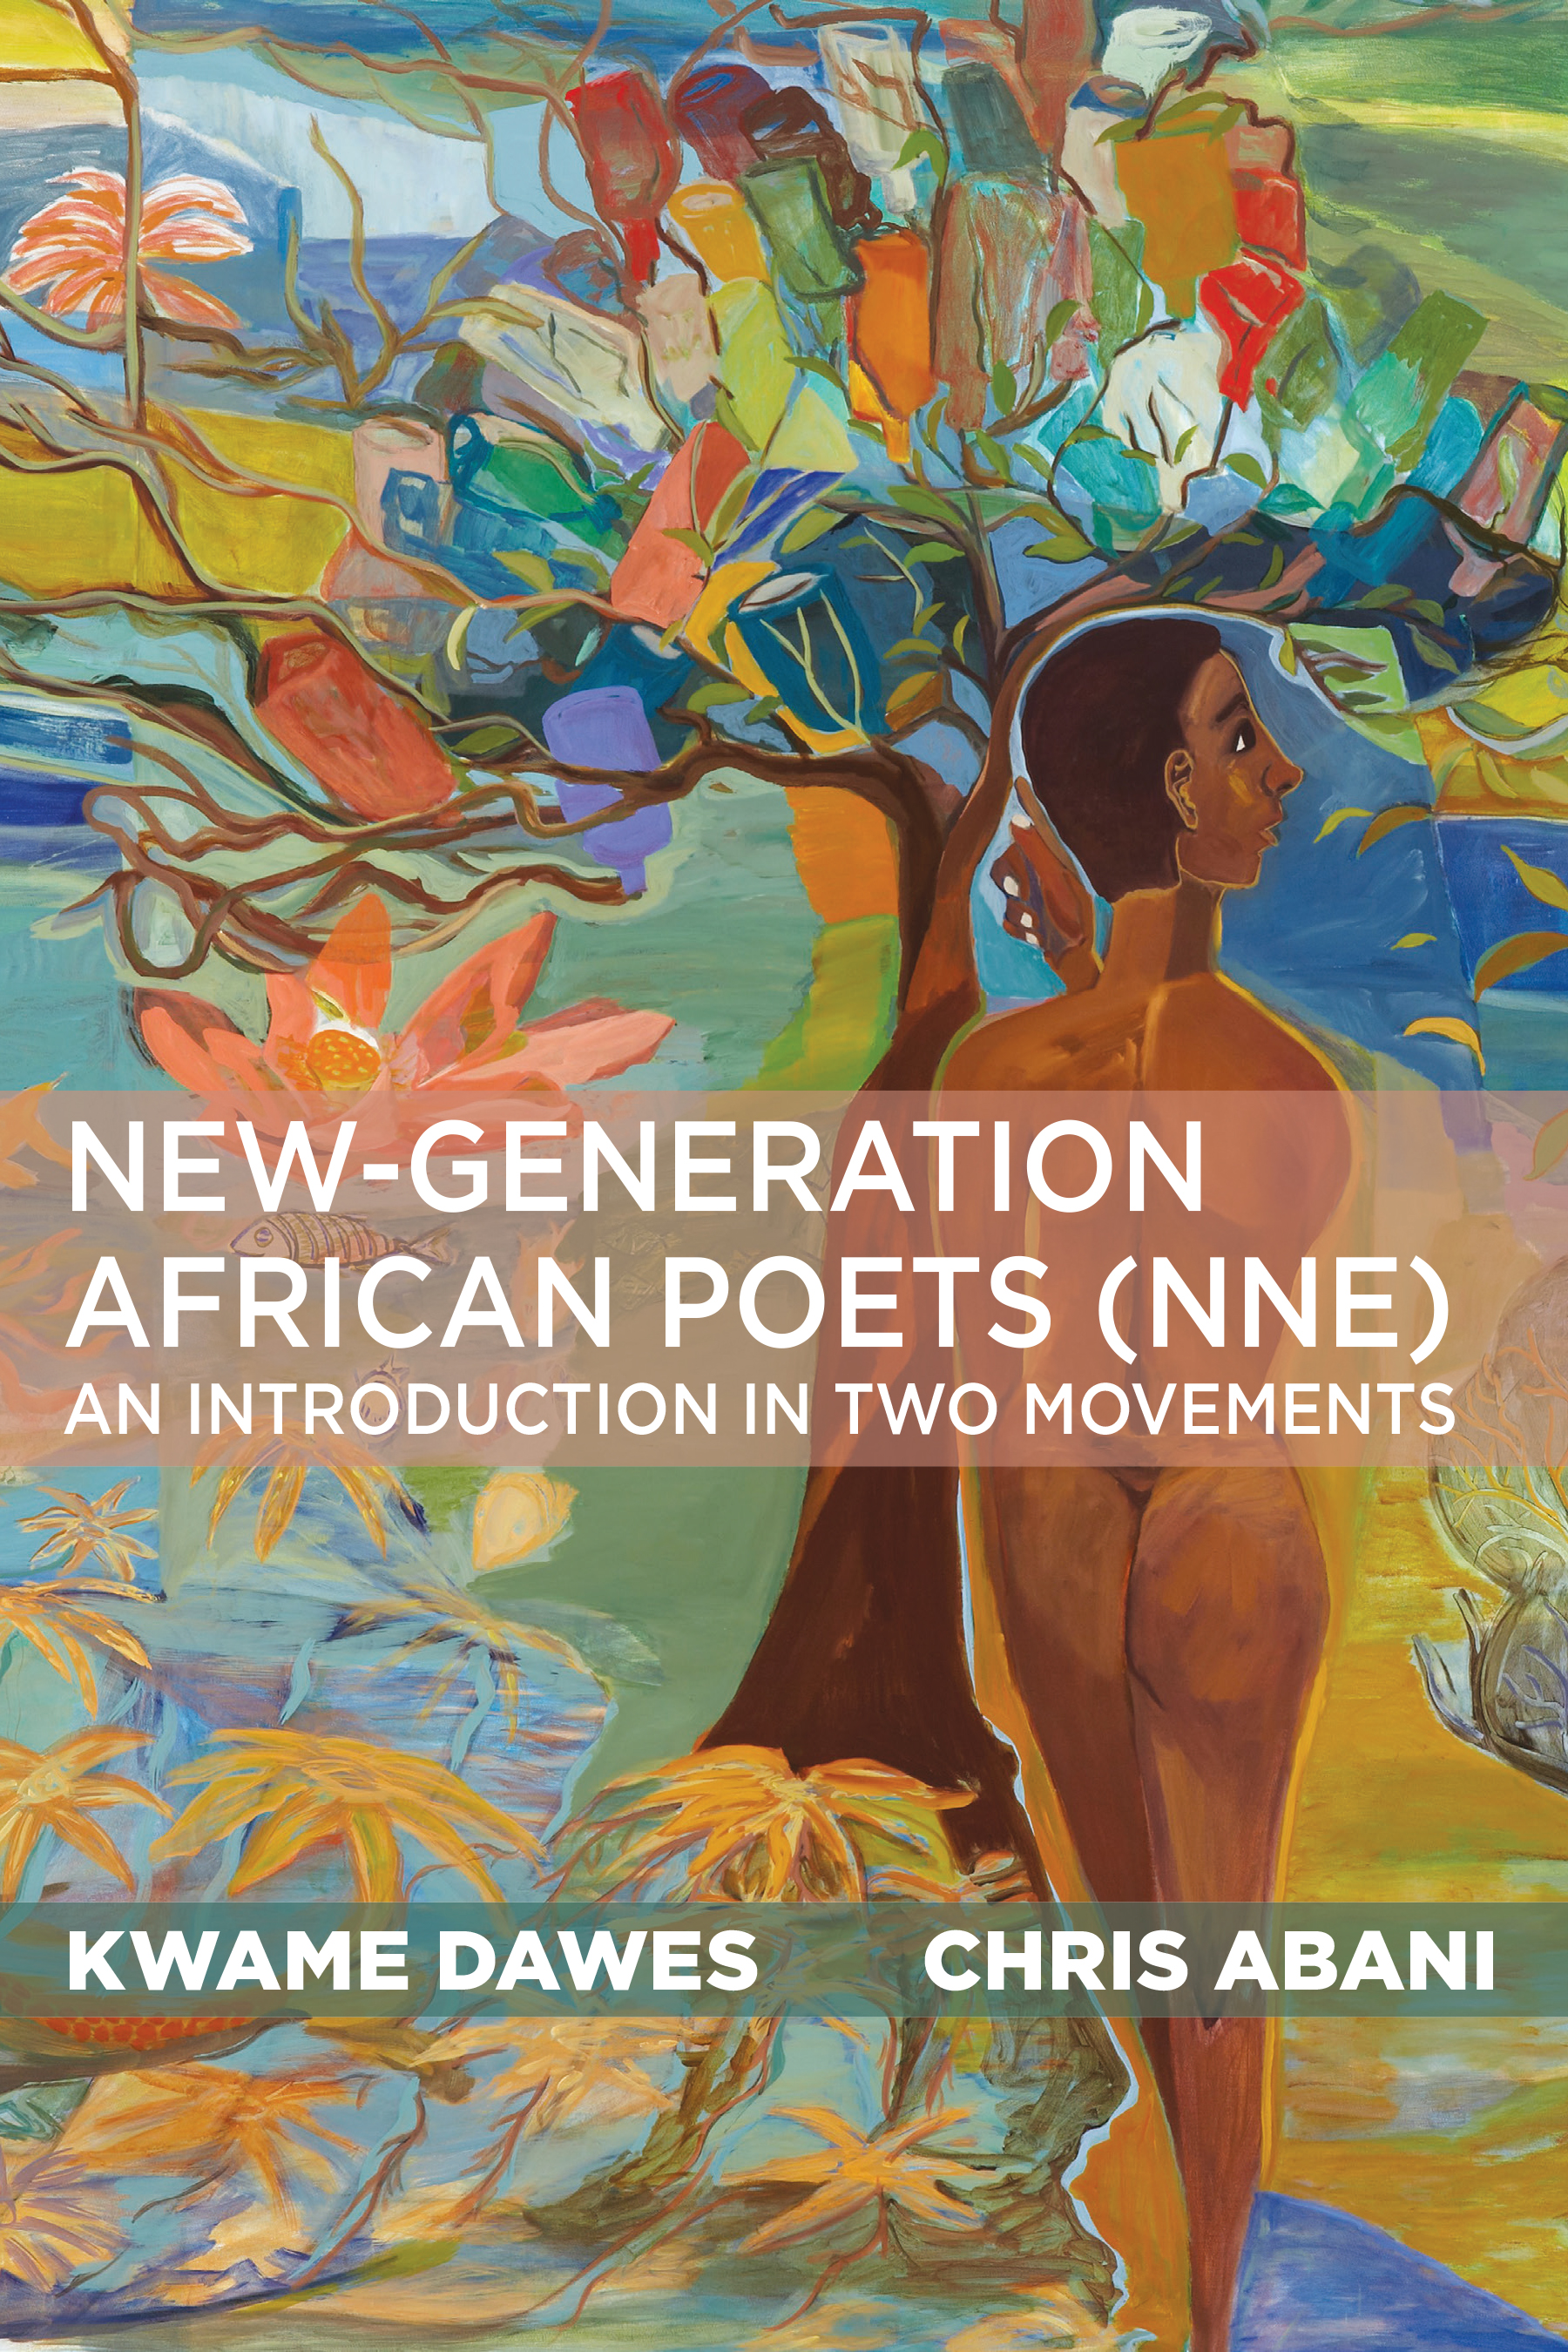 <h3> New-Generation African Poets (NNE): An Introduction in Two Movements | Kwame Dawes and Chris Abani</h3>